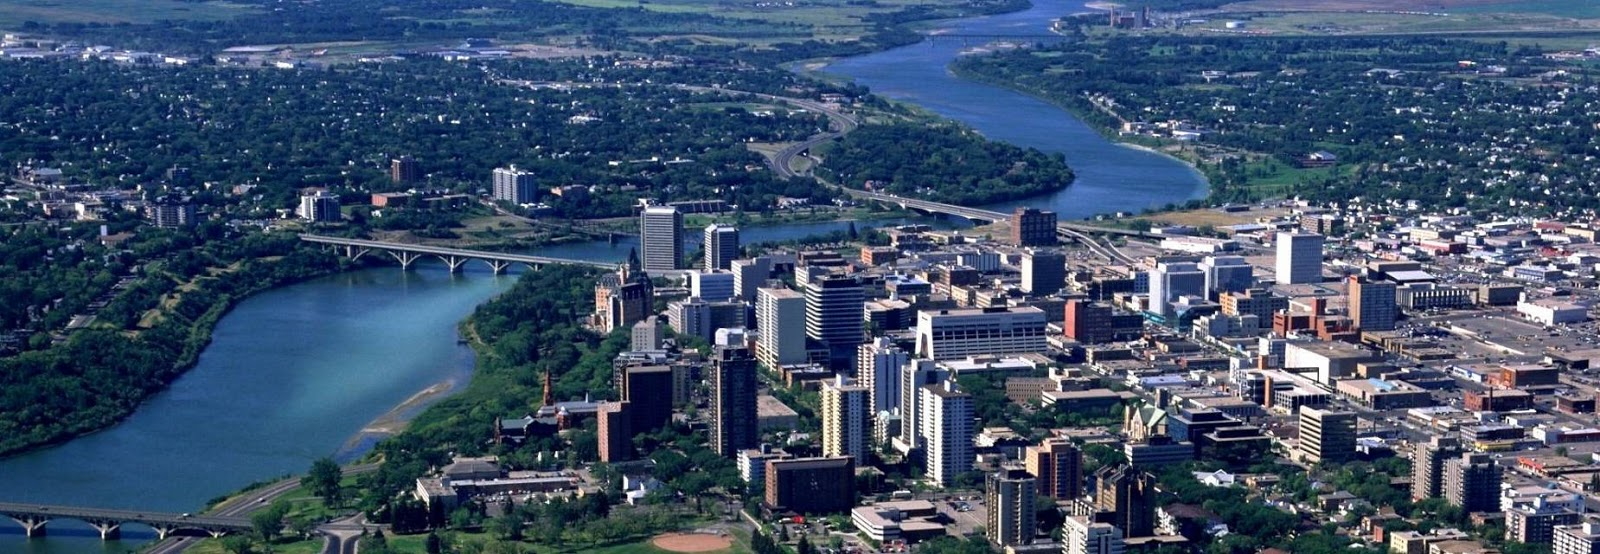 Saskatoon | The Largest city of Saskatchewan